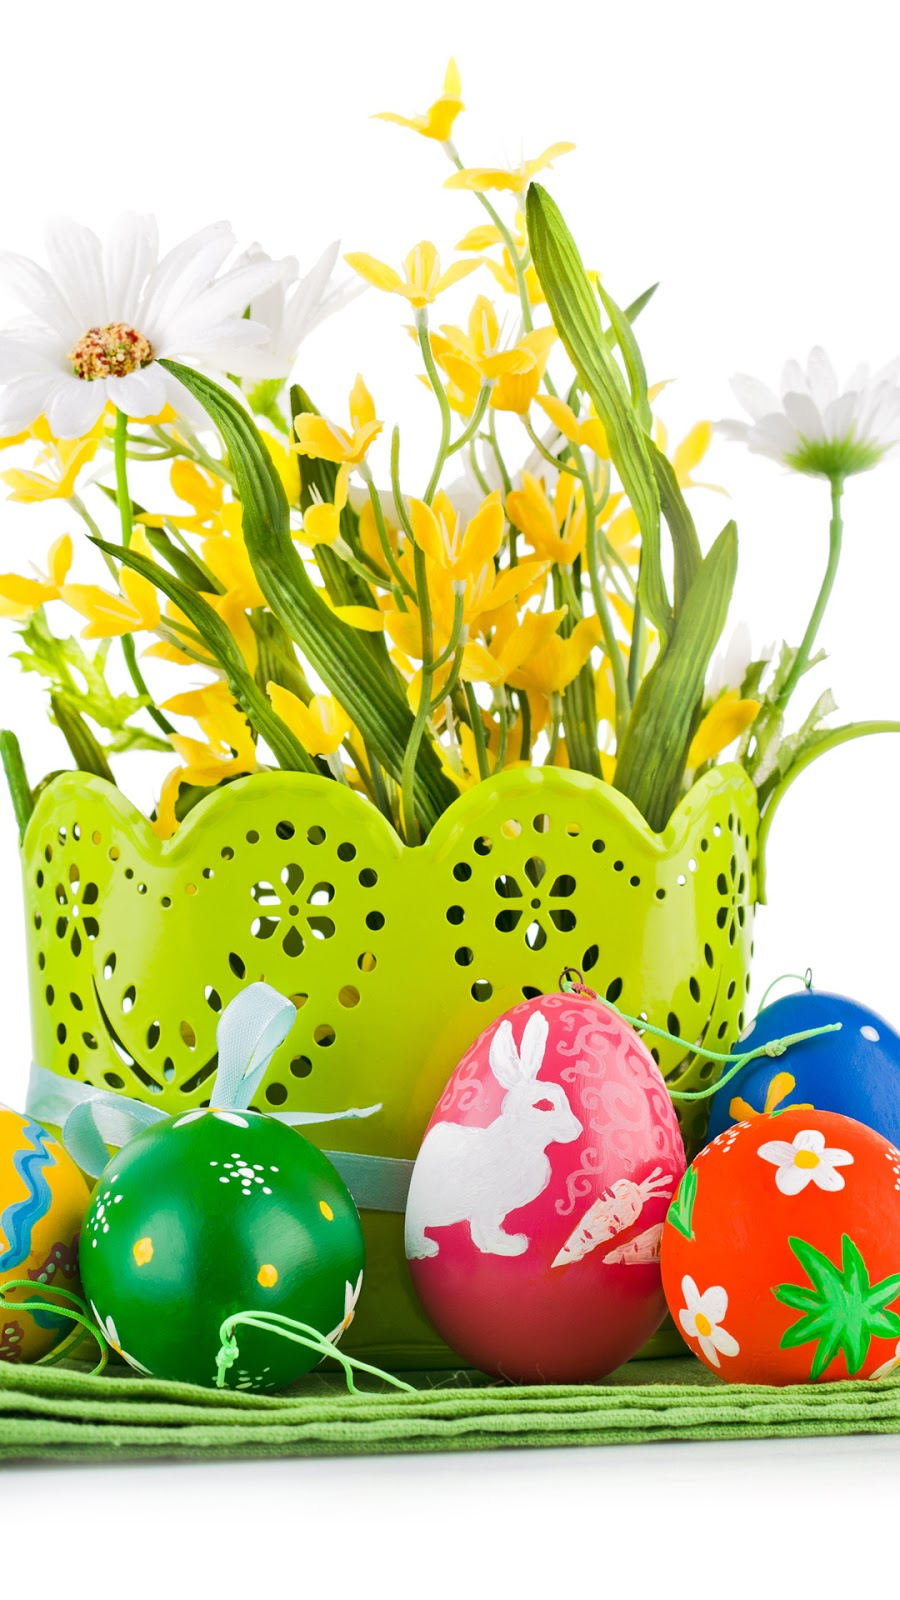 Easter iPhone Wallpapers (2)